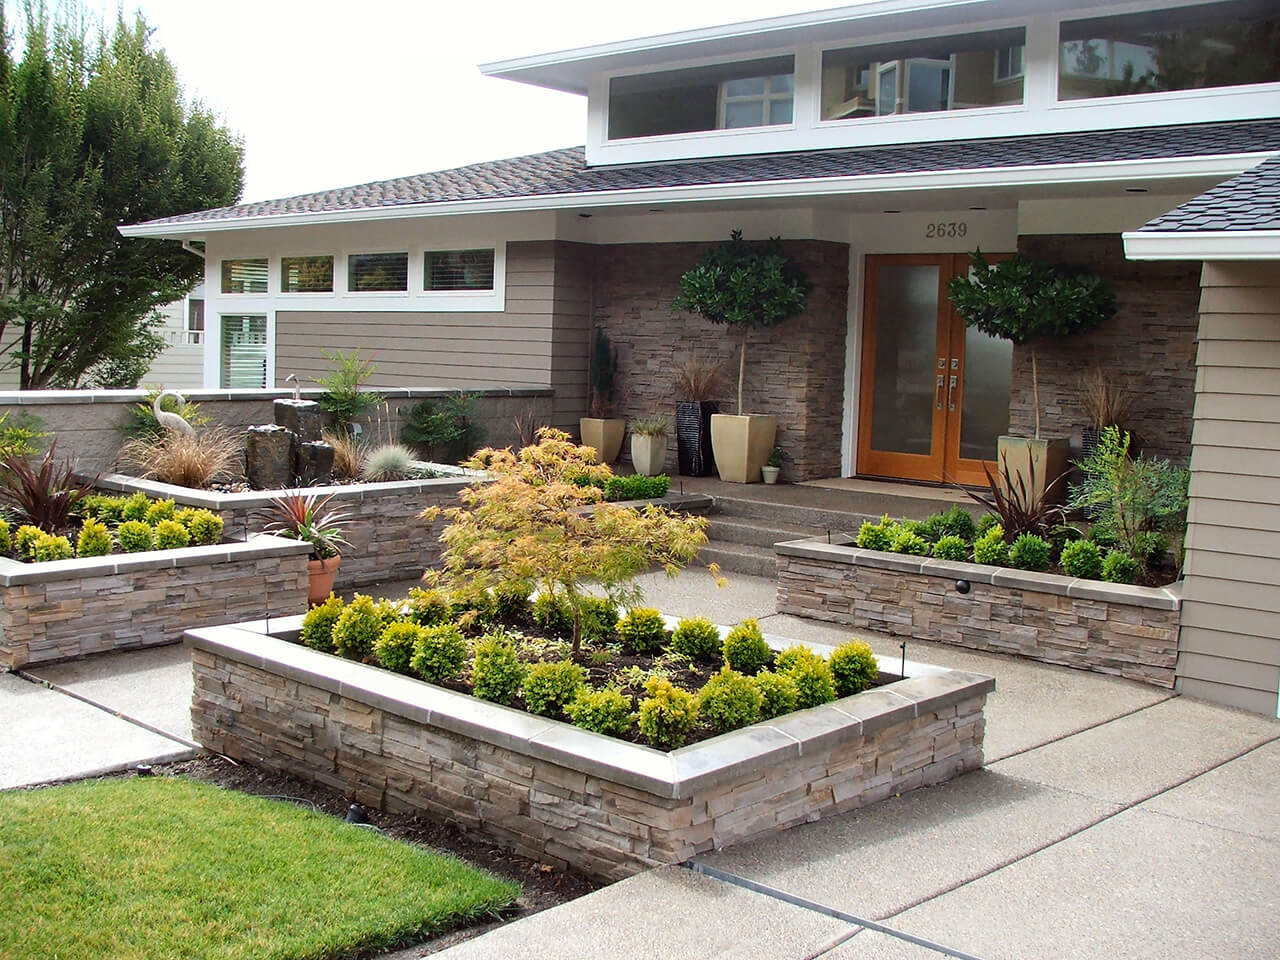 50 best front yard landscaping ideas and garden designs for Front yard garden design ideas